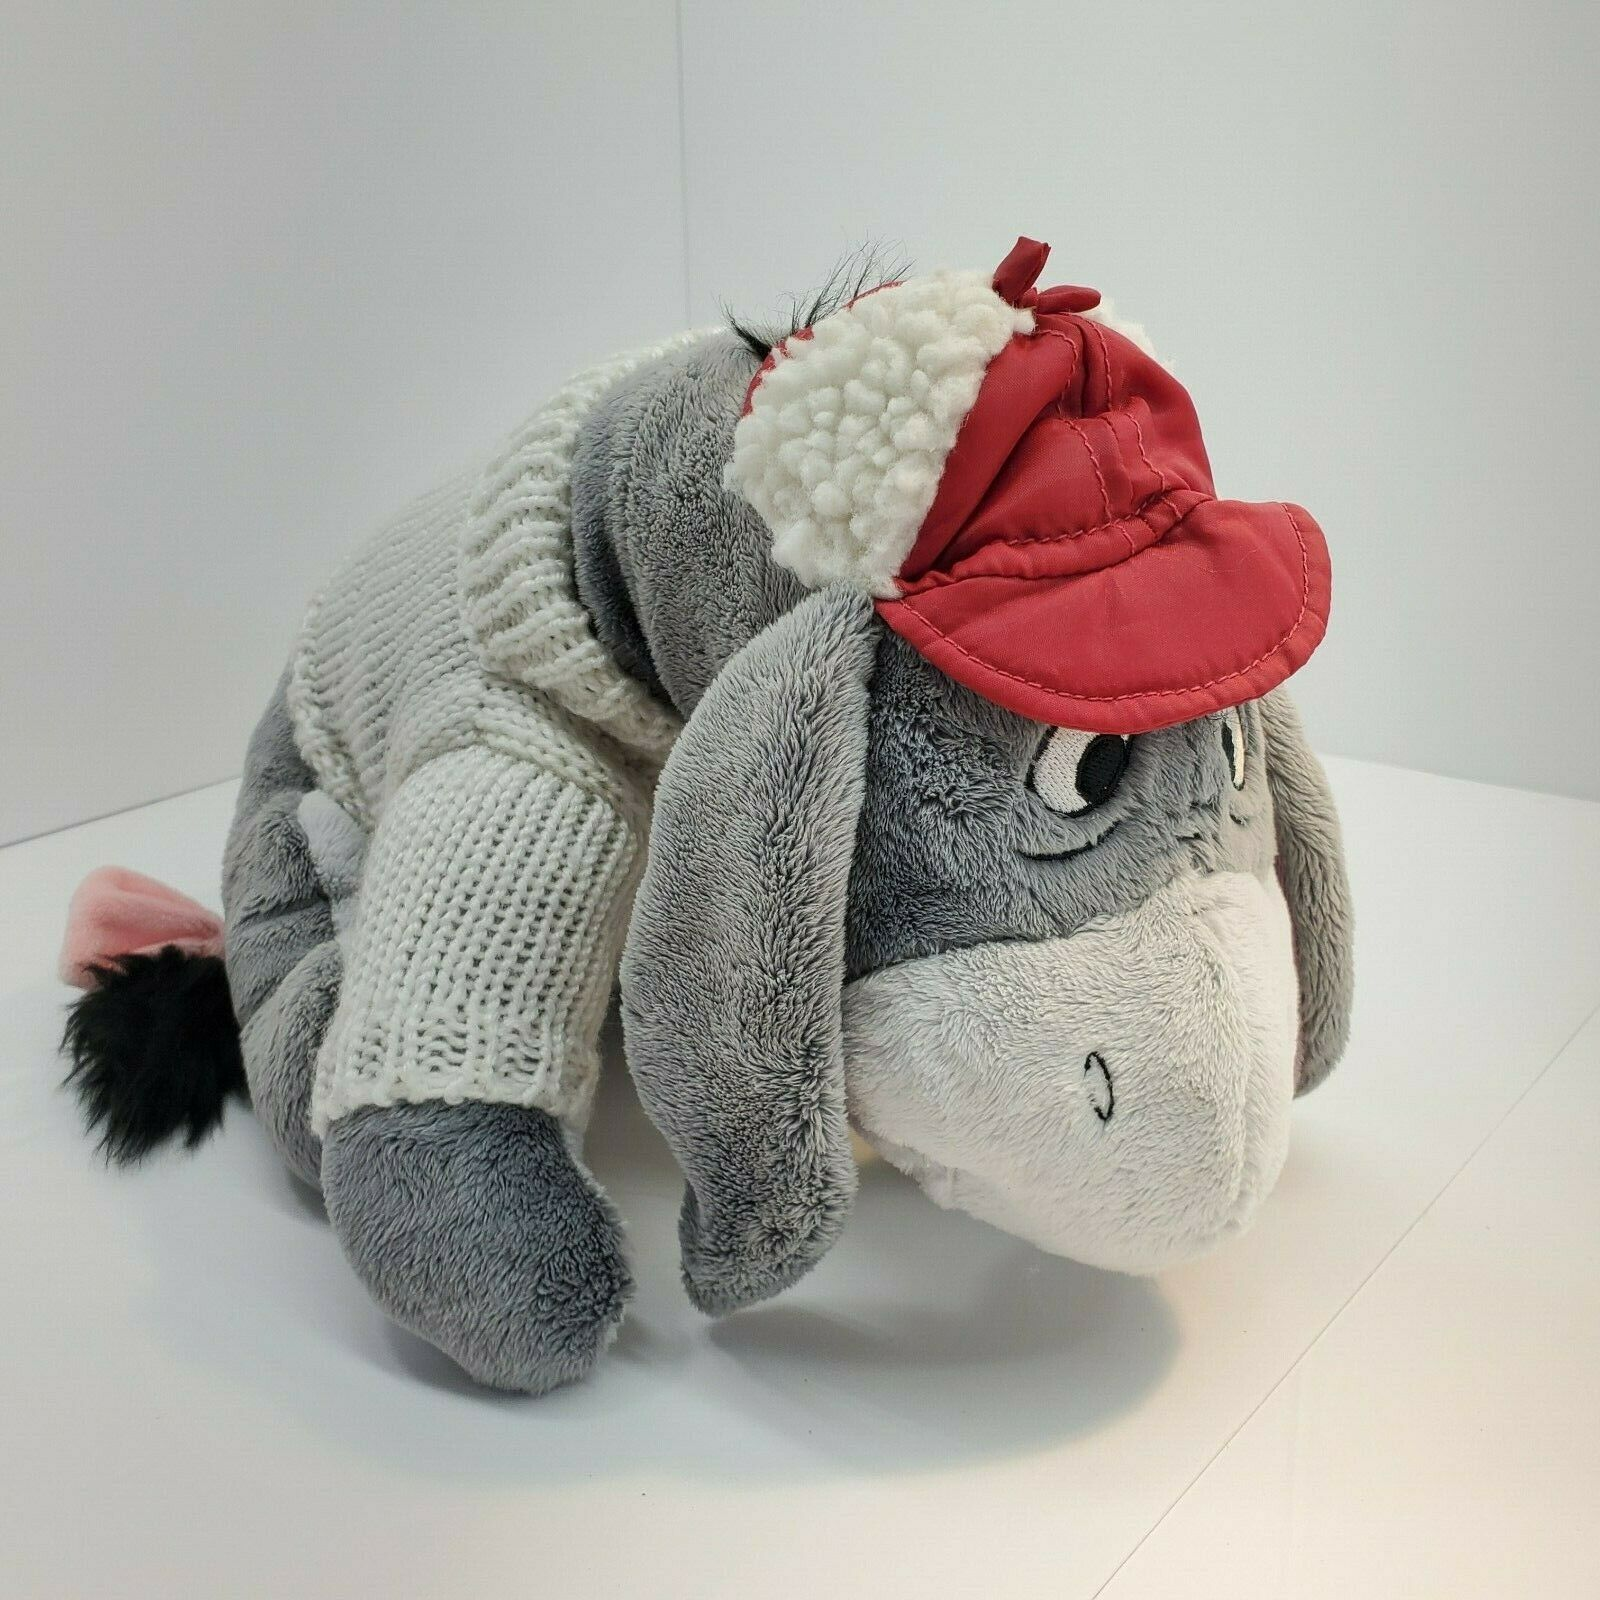 Primary image for Cozy Cable Eeyore Disney Store Plush Red Hat Sweater Green Snowflake New 14""